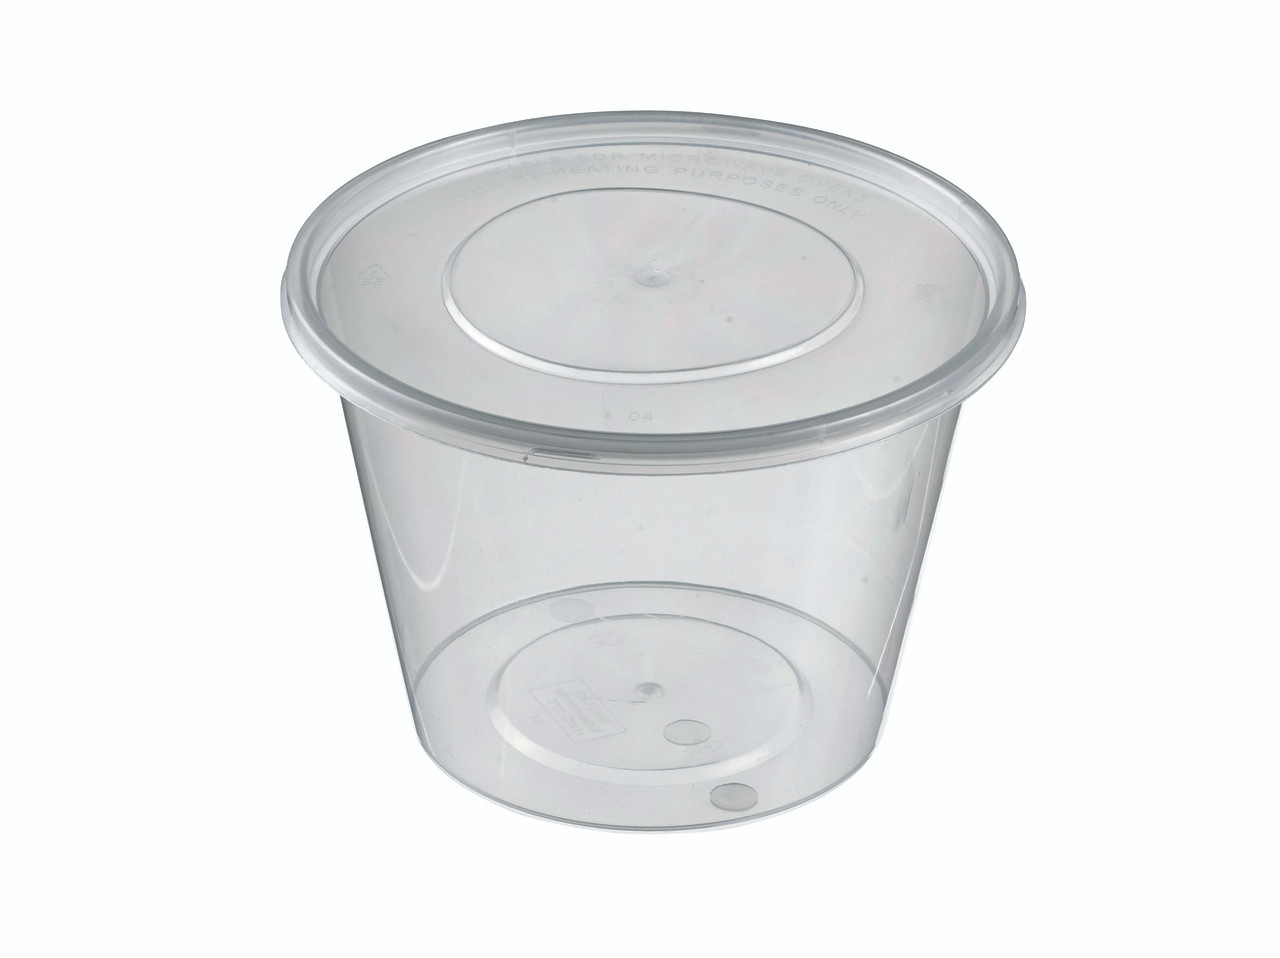 Round Container Lid Pp 500ml 16 9oz For To Go And Takeaway Solia Usa